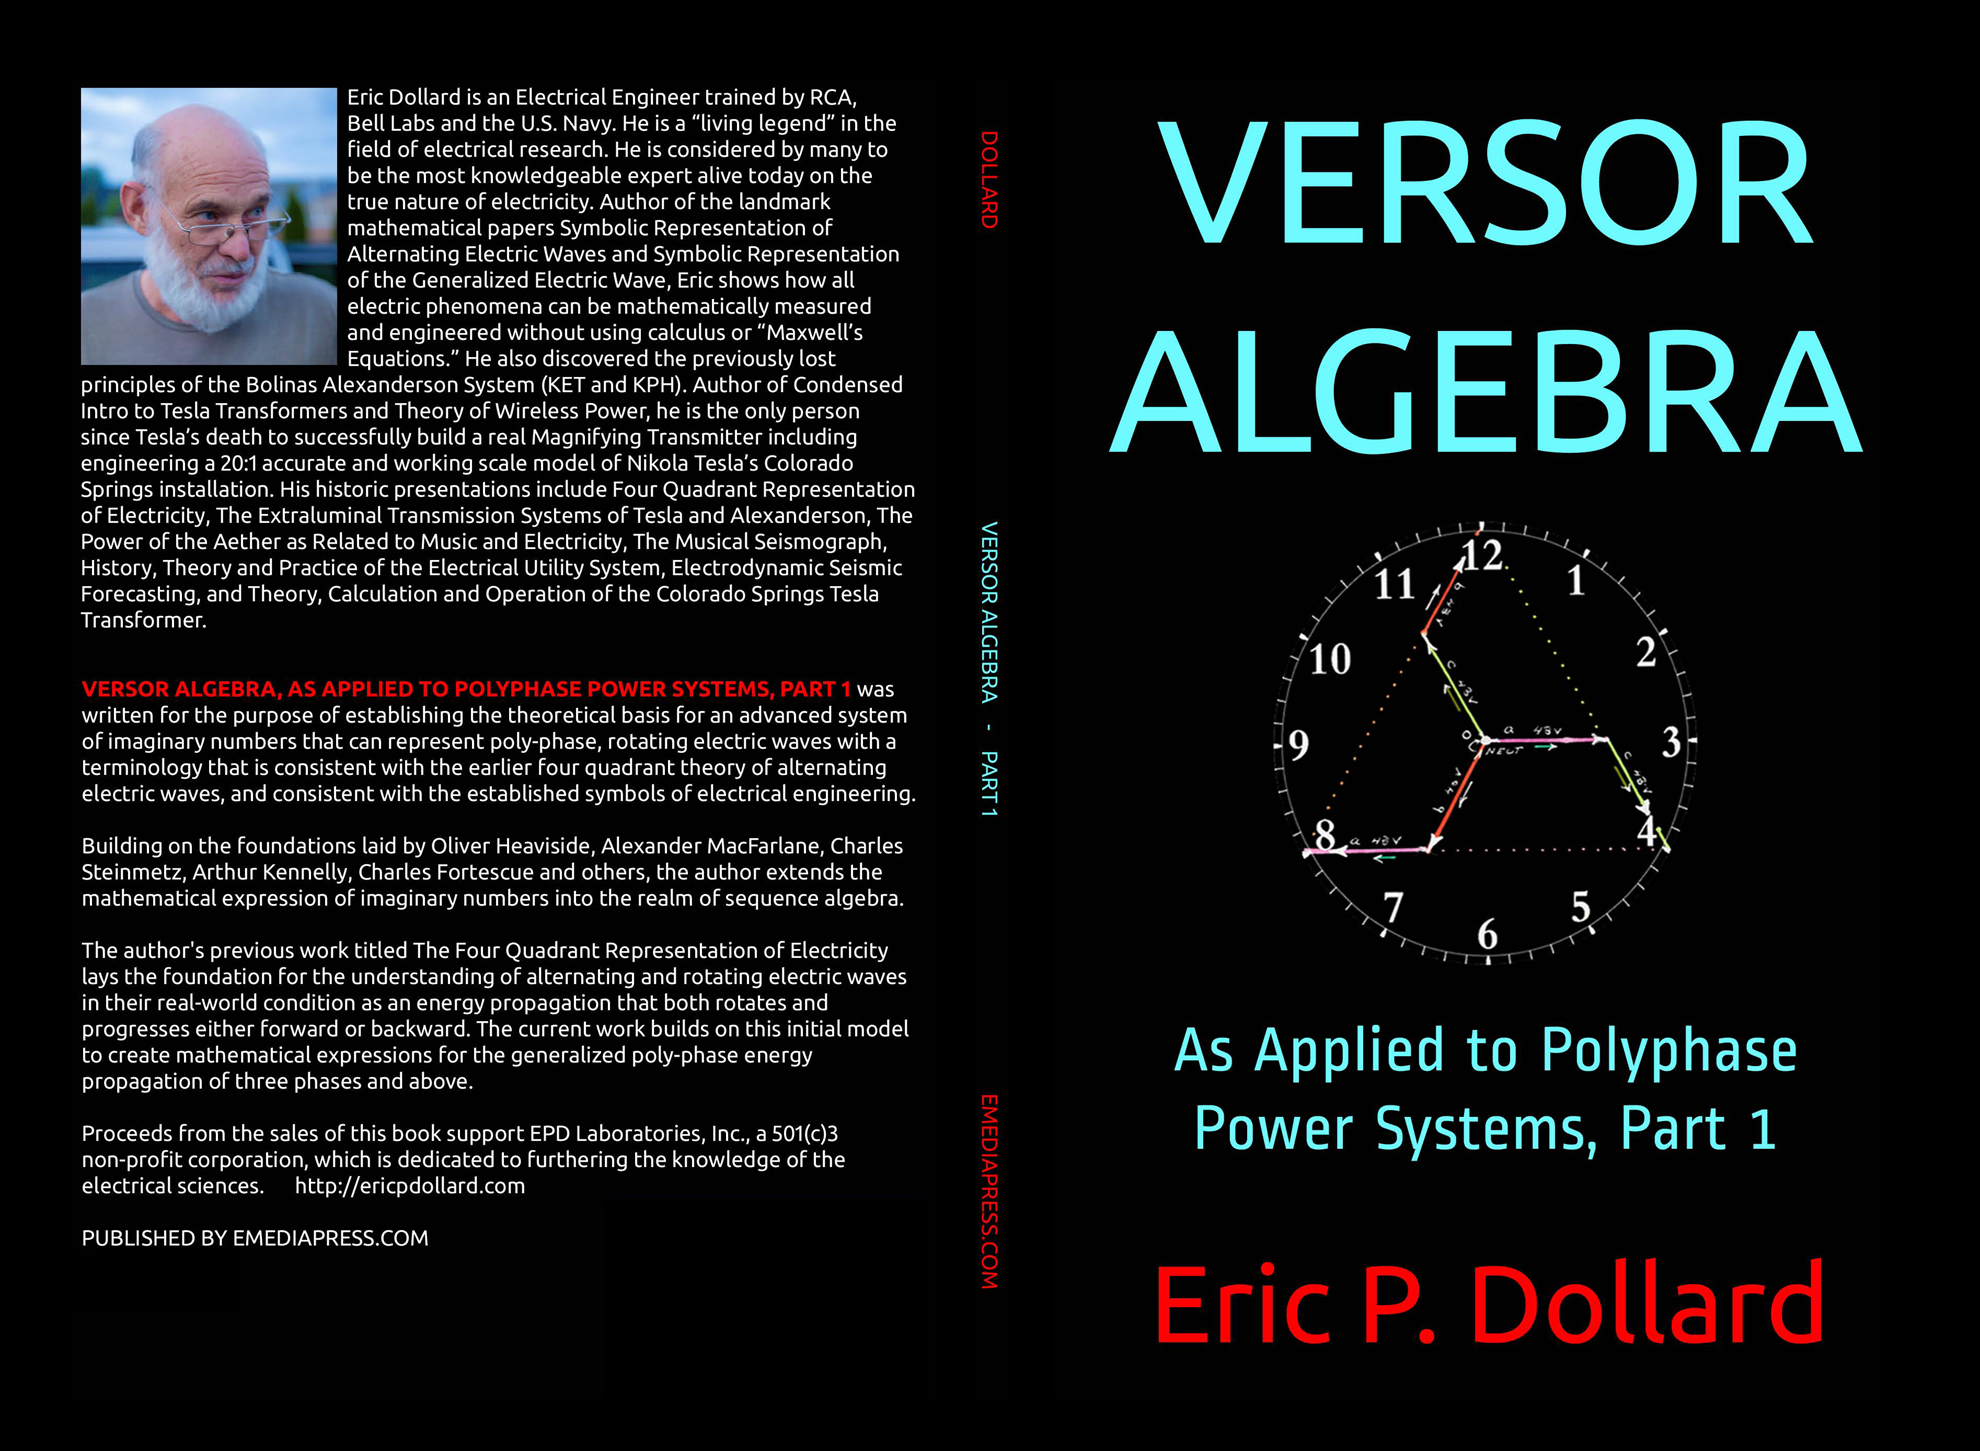 Versor Algebra Part 1 by Eric Dollard